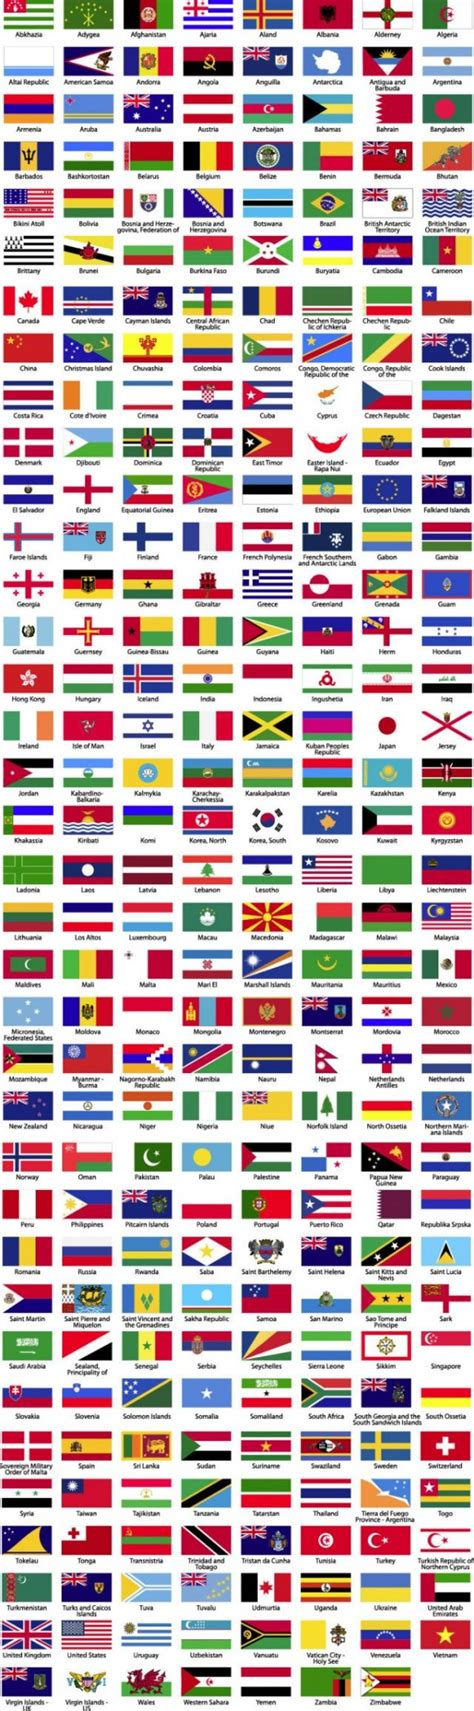 flags of the world design 世界287ヵ国の国旗 無料ベクターイラスト素材 all free clipart